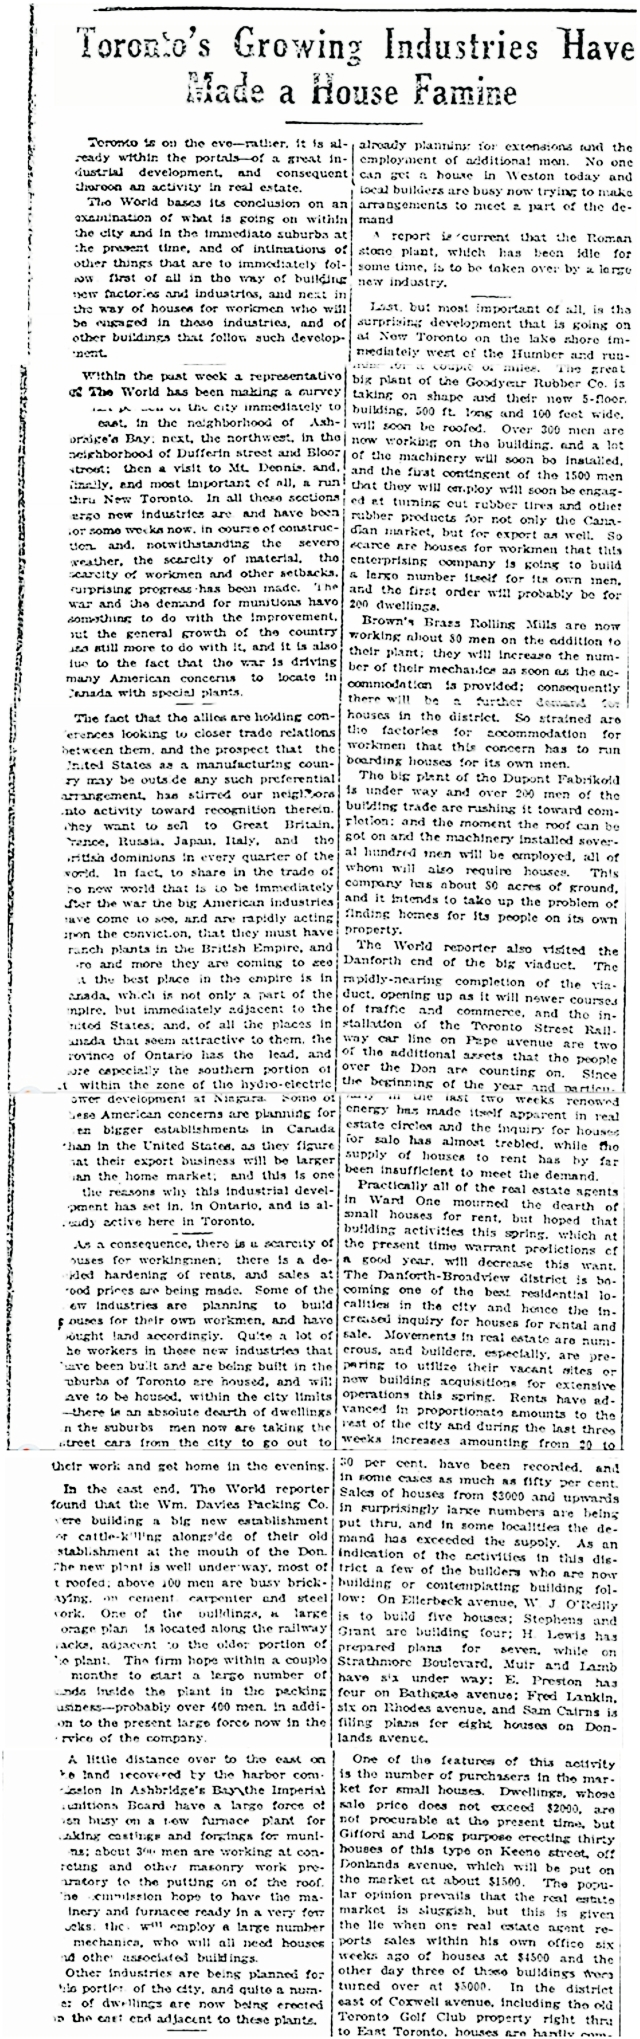 House Famine Toronto World March 10 1917a